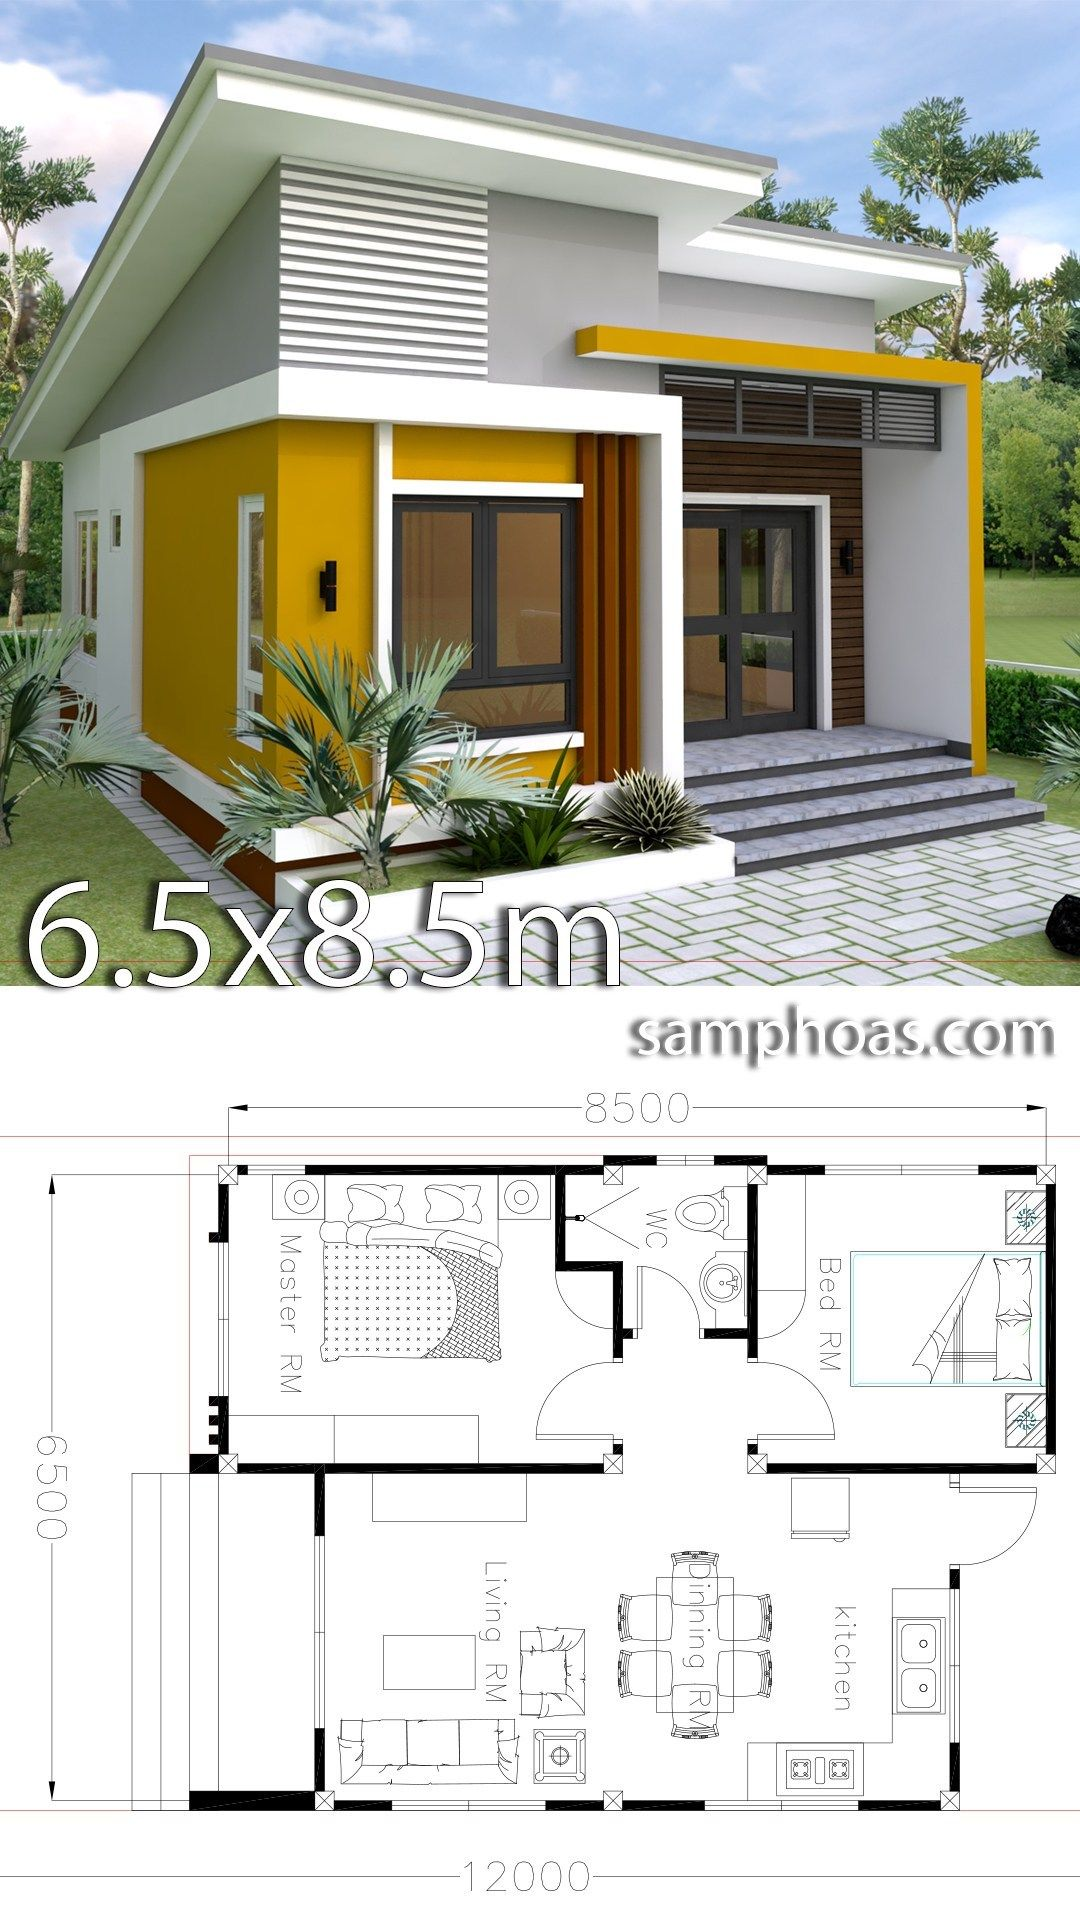 Small Home Design Plan 6 5x8 5m With 2 Bedrooms Samphoas Plansearch Small House Design Plans Small House Design Simple House Design